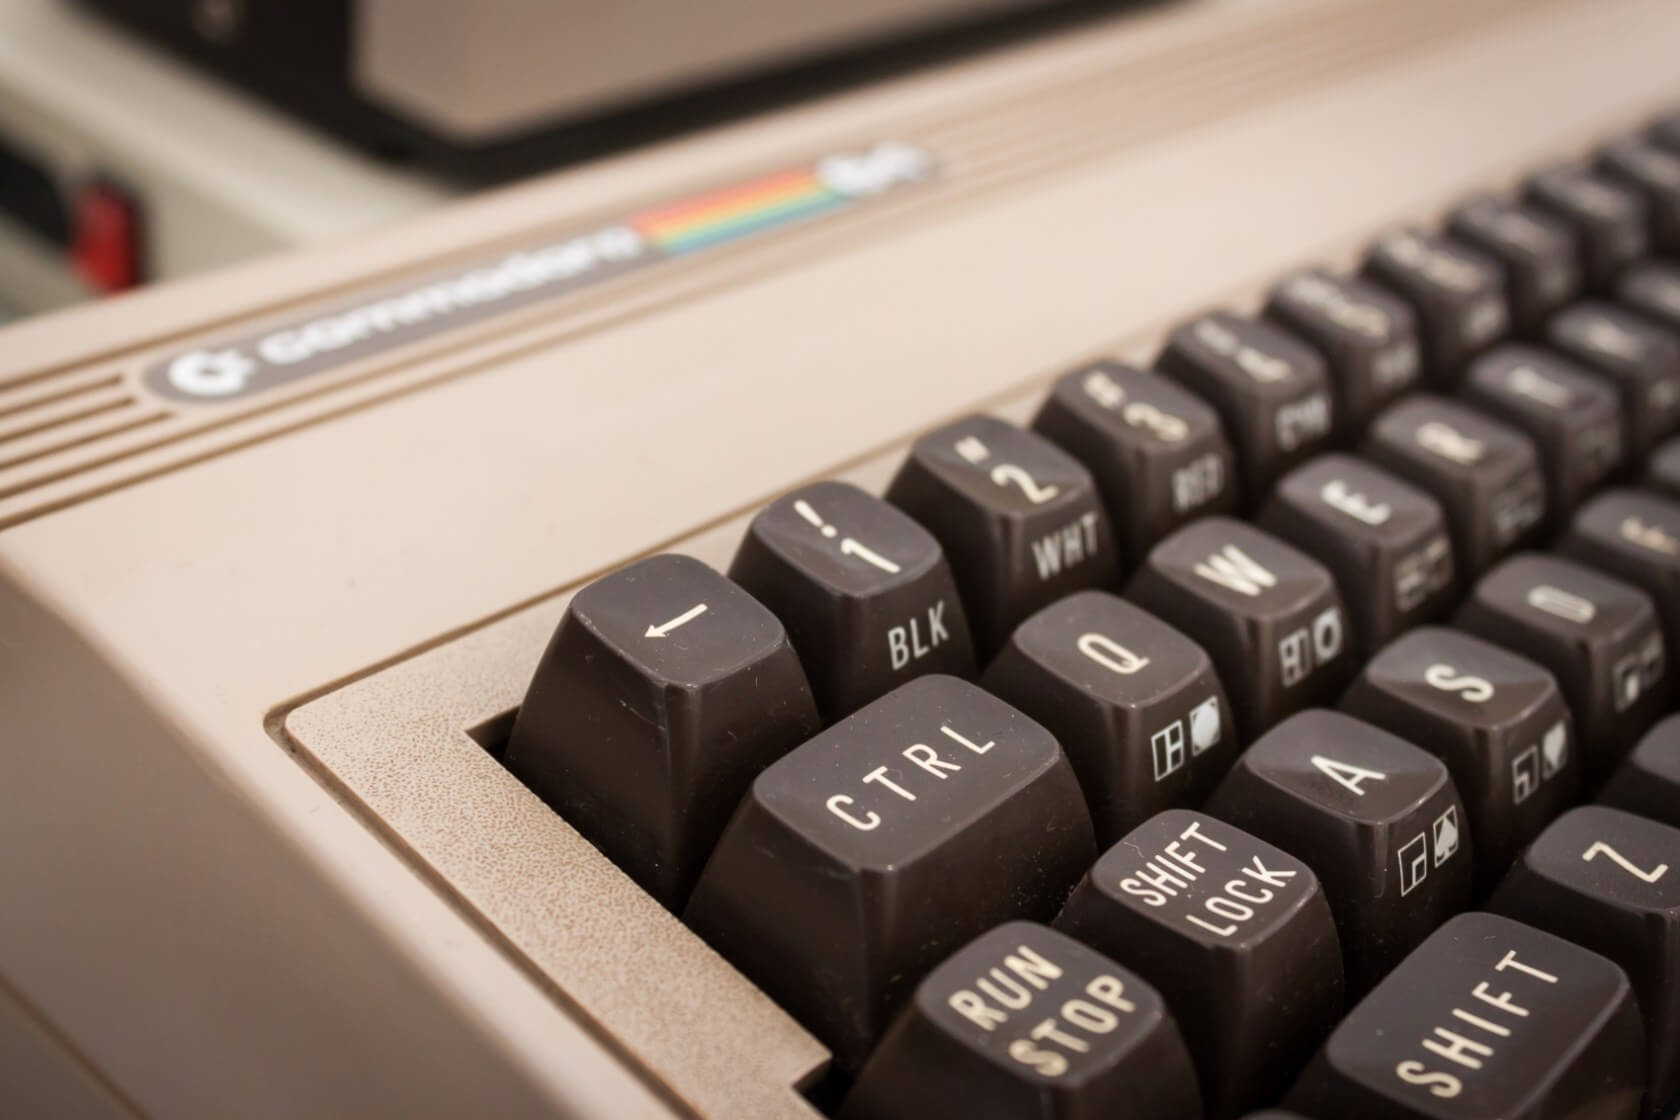 The classic Commodore 64 is getting a full sized re-release